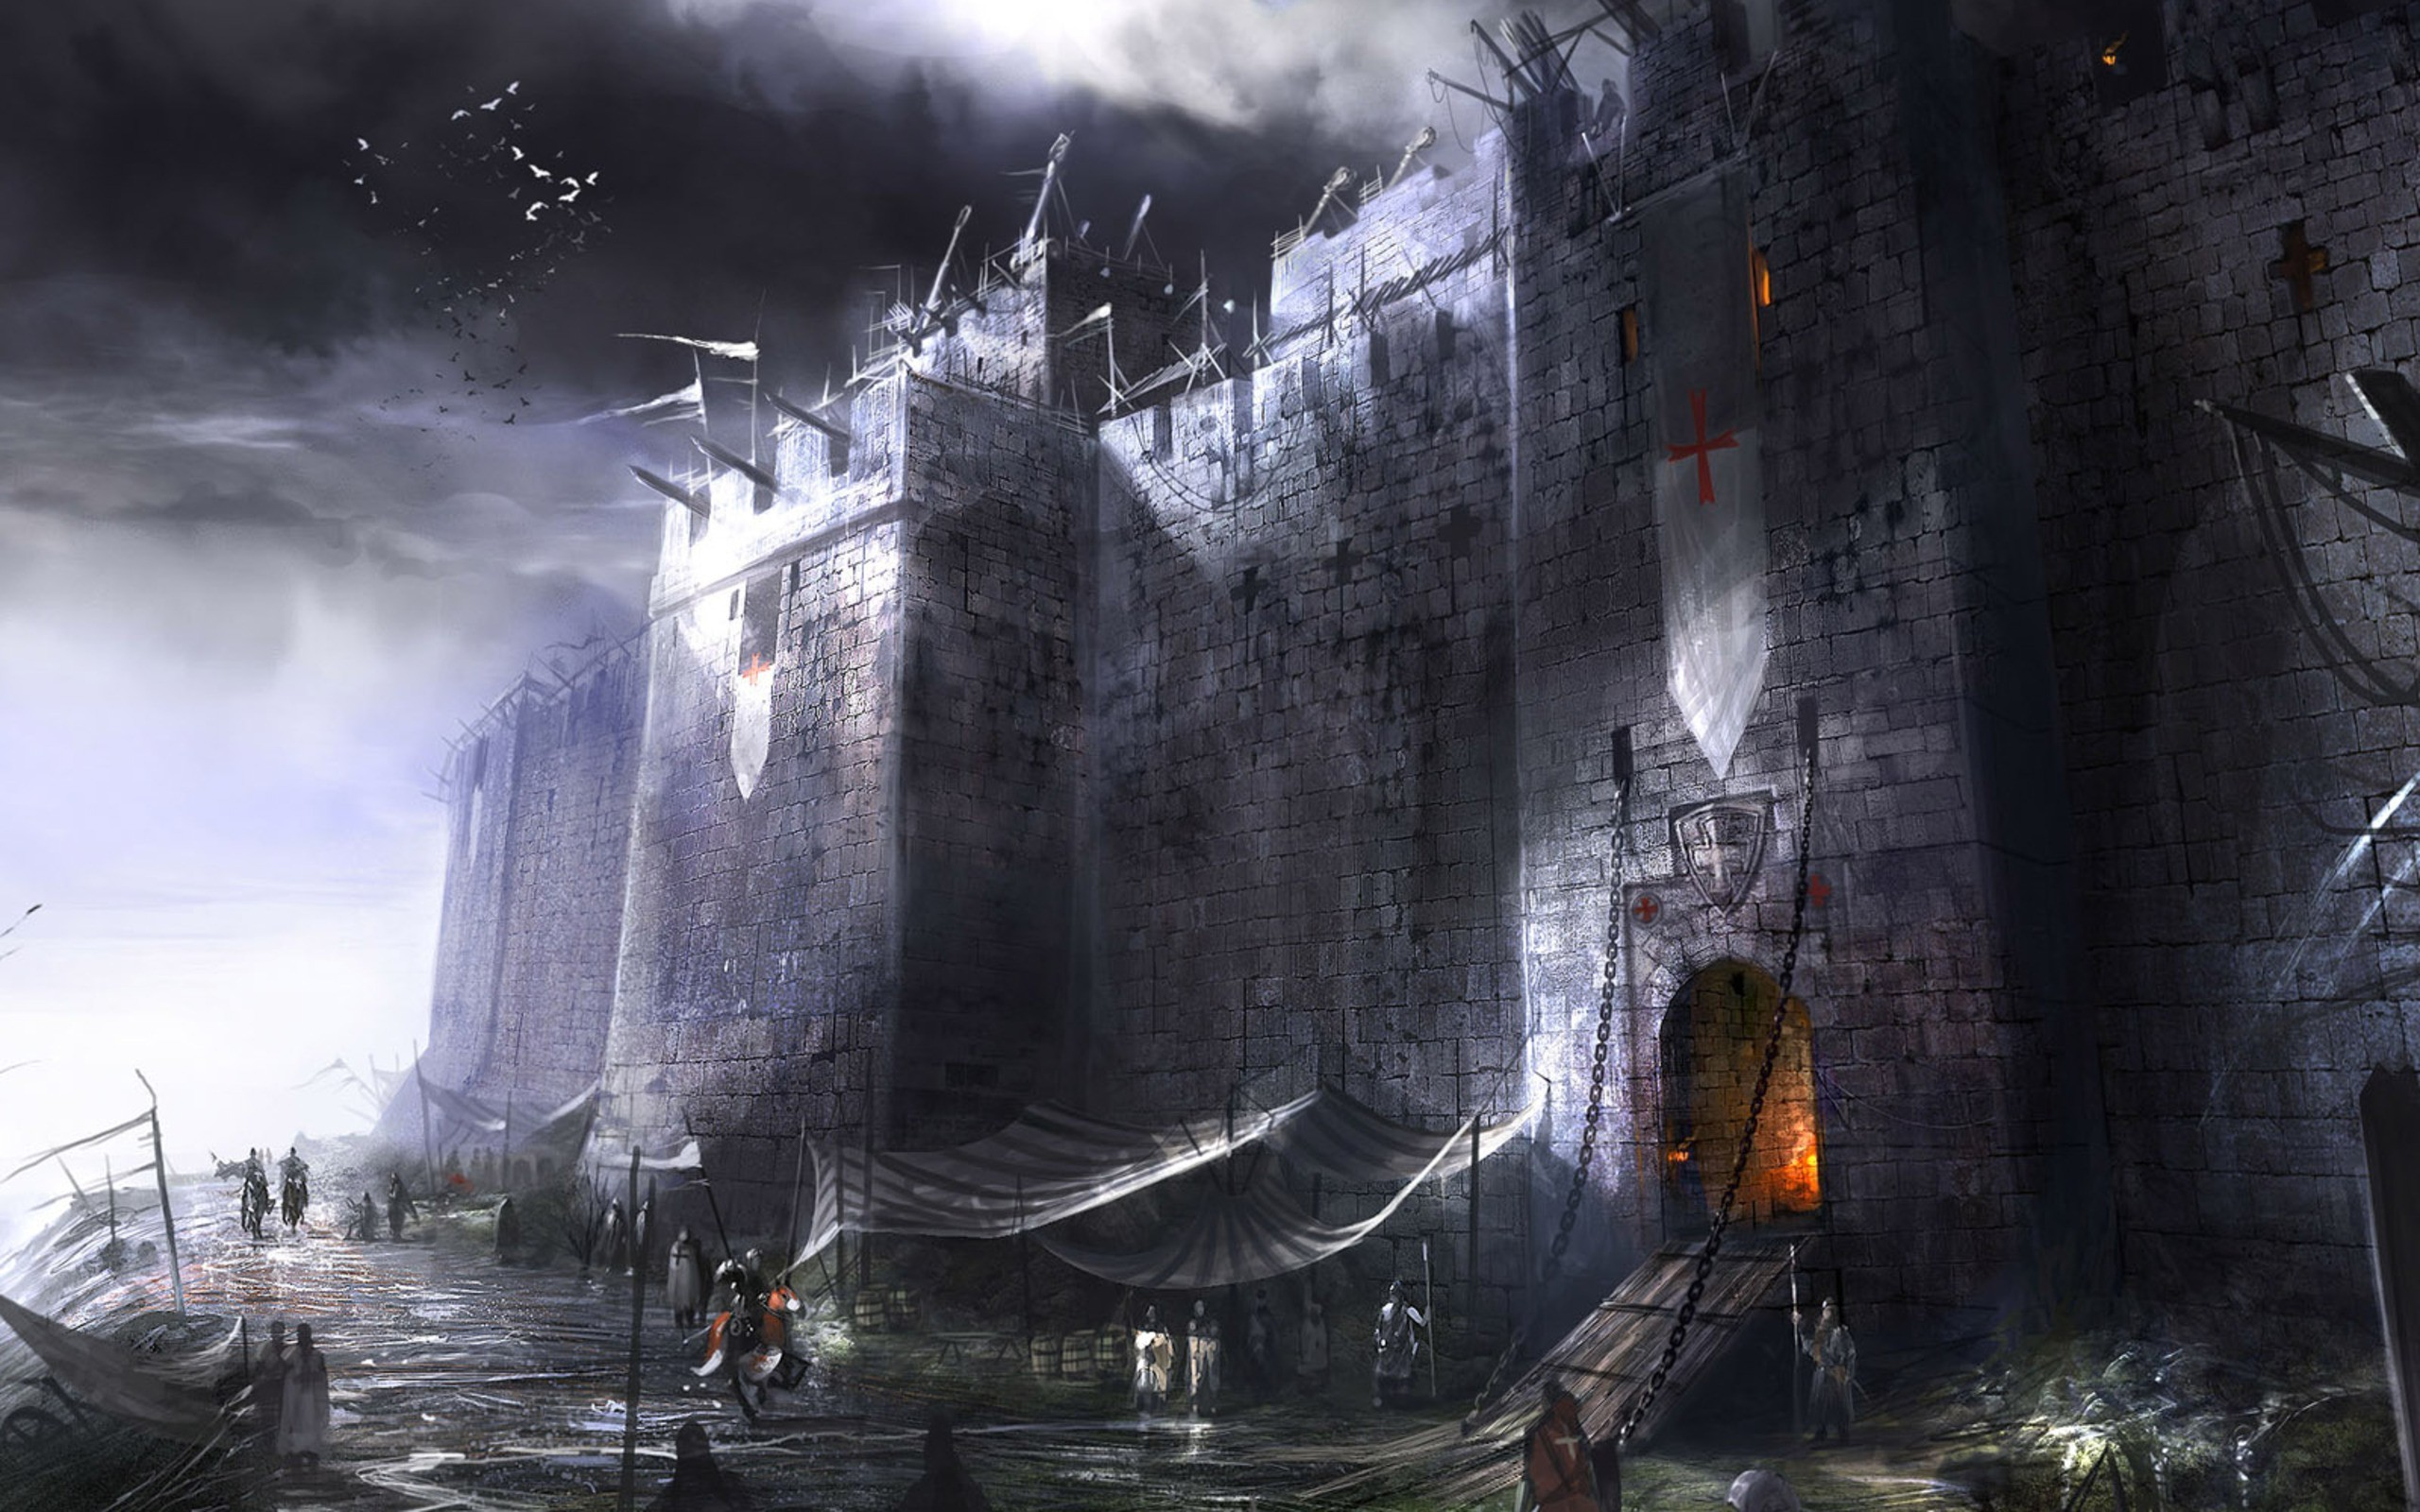 2560x1600 Image for Goth Wallpapers Castle 37 | <{*KNIGHTs}> & <{*CASTLEs}> |  Pinterest | Castles and Wallpaper